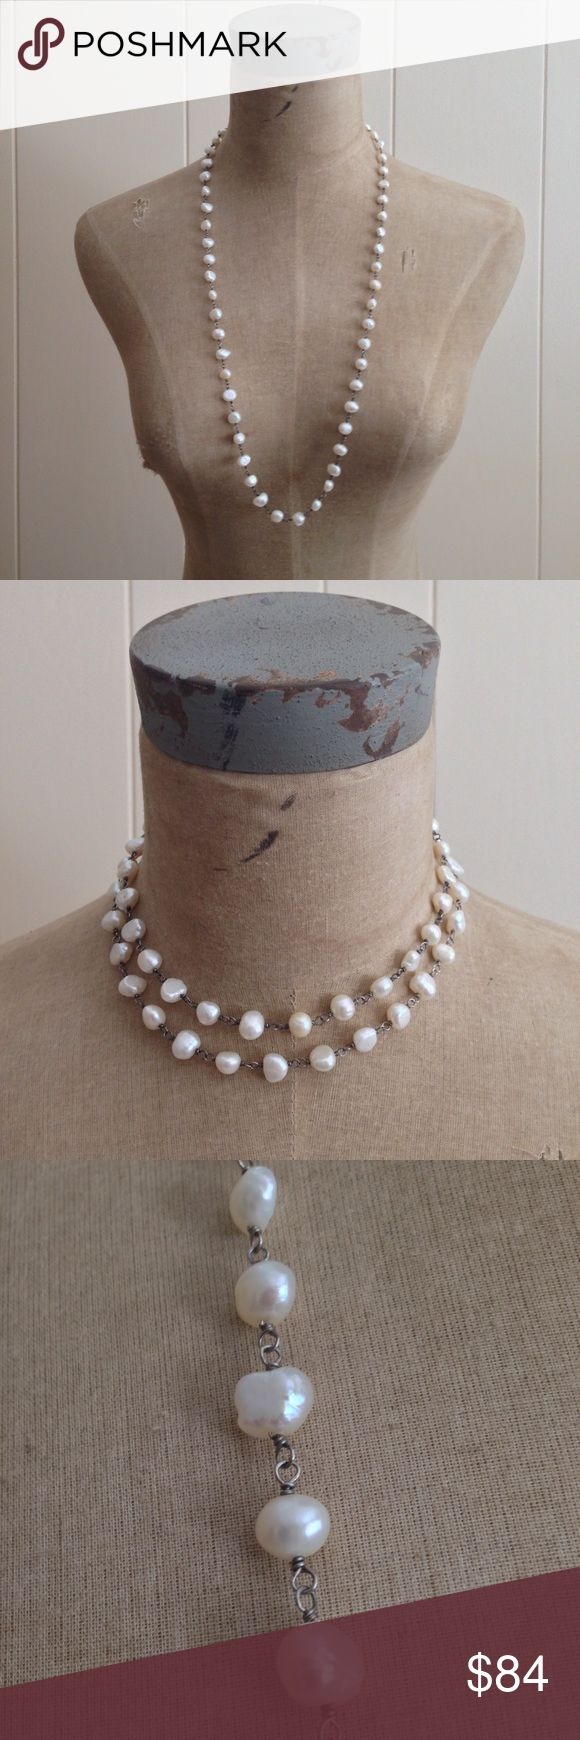 """NWOT [Silpada] Fresh Catch Pearl Necklace N1368 [Silpada] Fresh Catch Pearl Necklace N1368, NWOT  * Hand-twisted, oxidized Sterling Silver gives this Pearl beauty high style. * Necklace is approximately 32""""L. * Wear single strand or wrapped. * Lobster clasp  🚫Trades 🚫Modeling ✅Ask questions prior to purchasing. ✅Same day shipping if purchased by 2 pm ET Mon. - Fri. Silpada Jewelry Necklaces"""